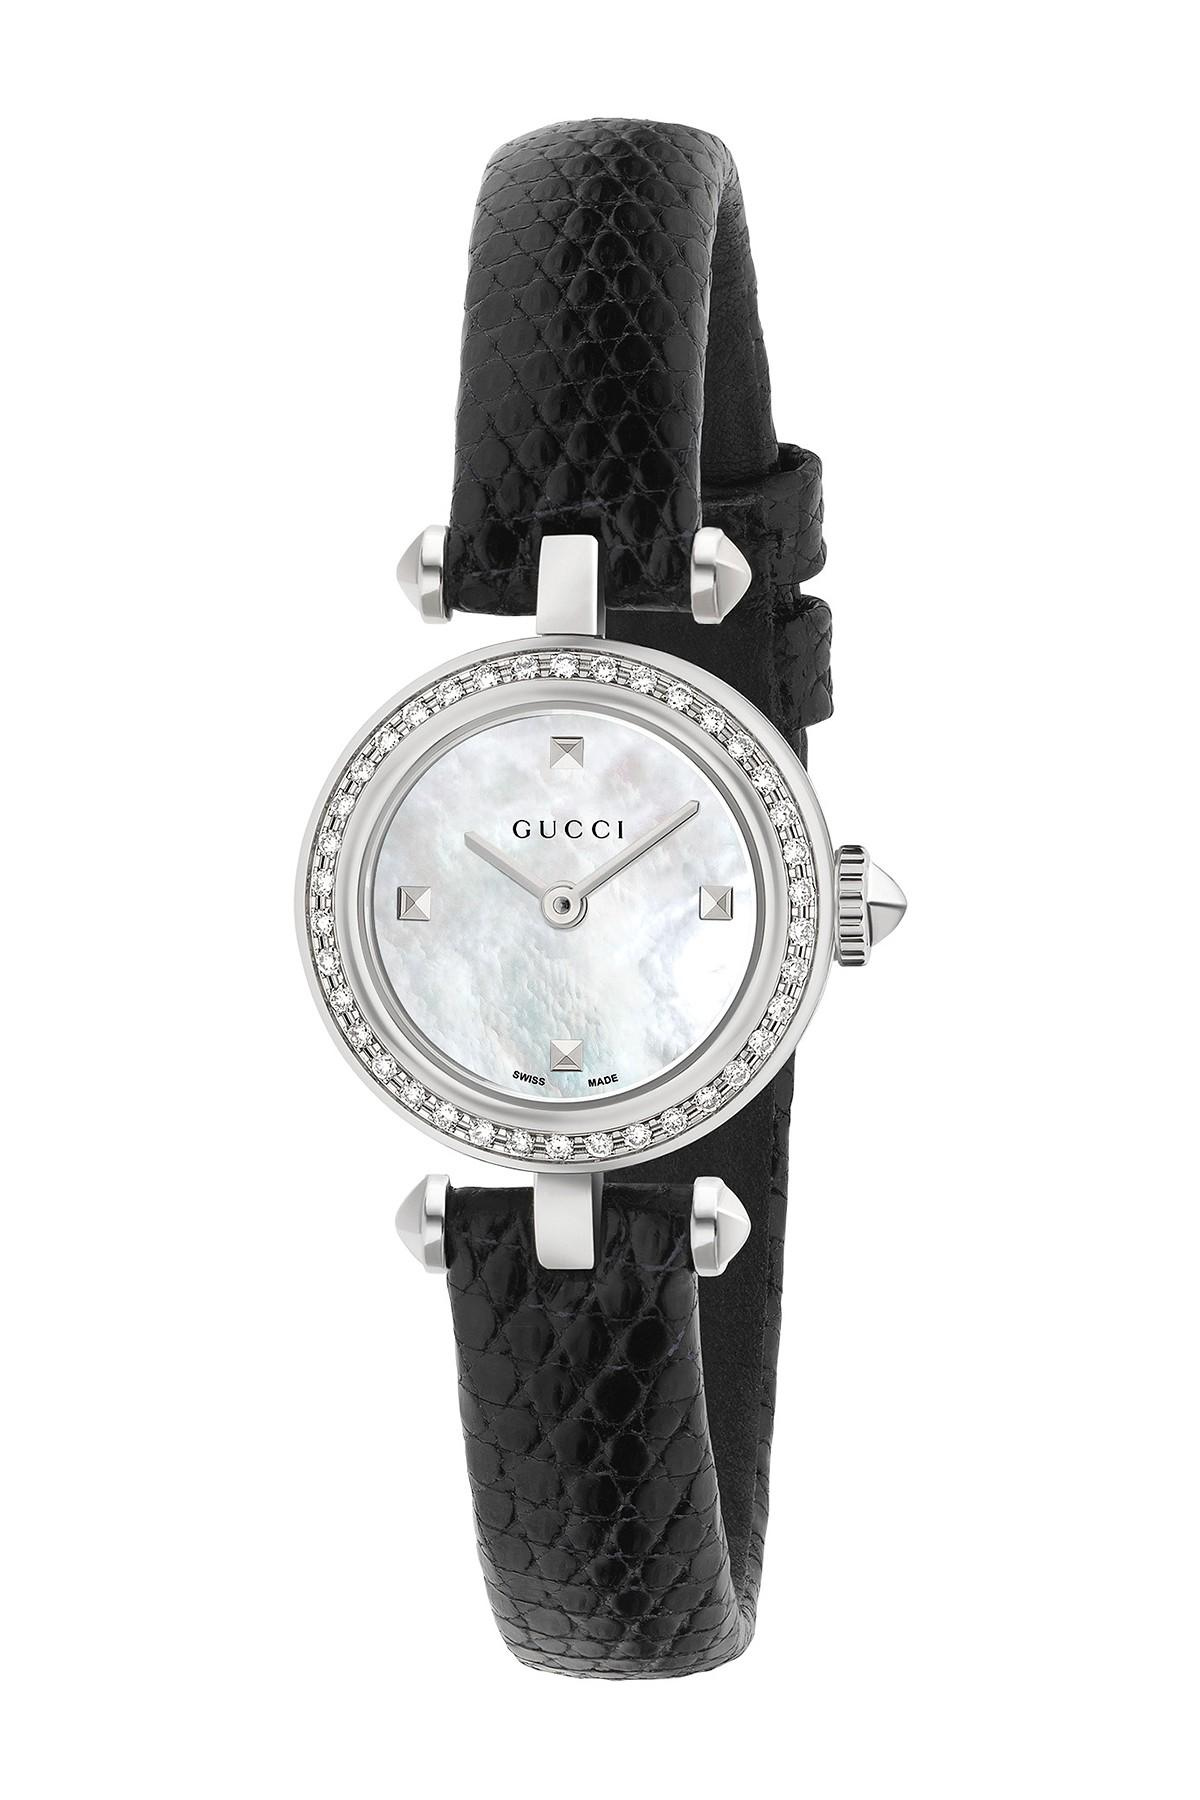 8adc6281596 Gucci - Metallic Women s 141 Diamond   Mother Of Pearl Embossed Leather  Strap Watch